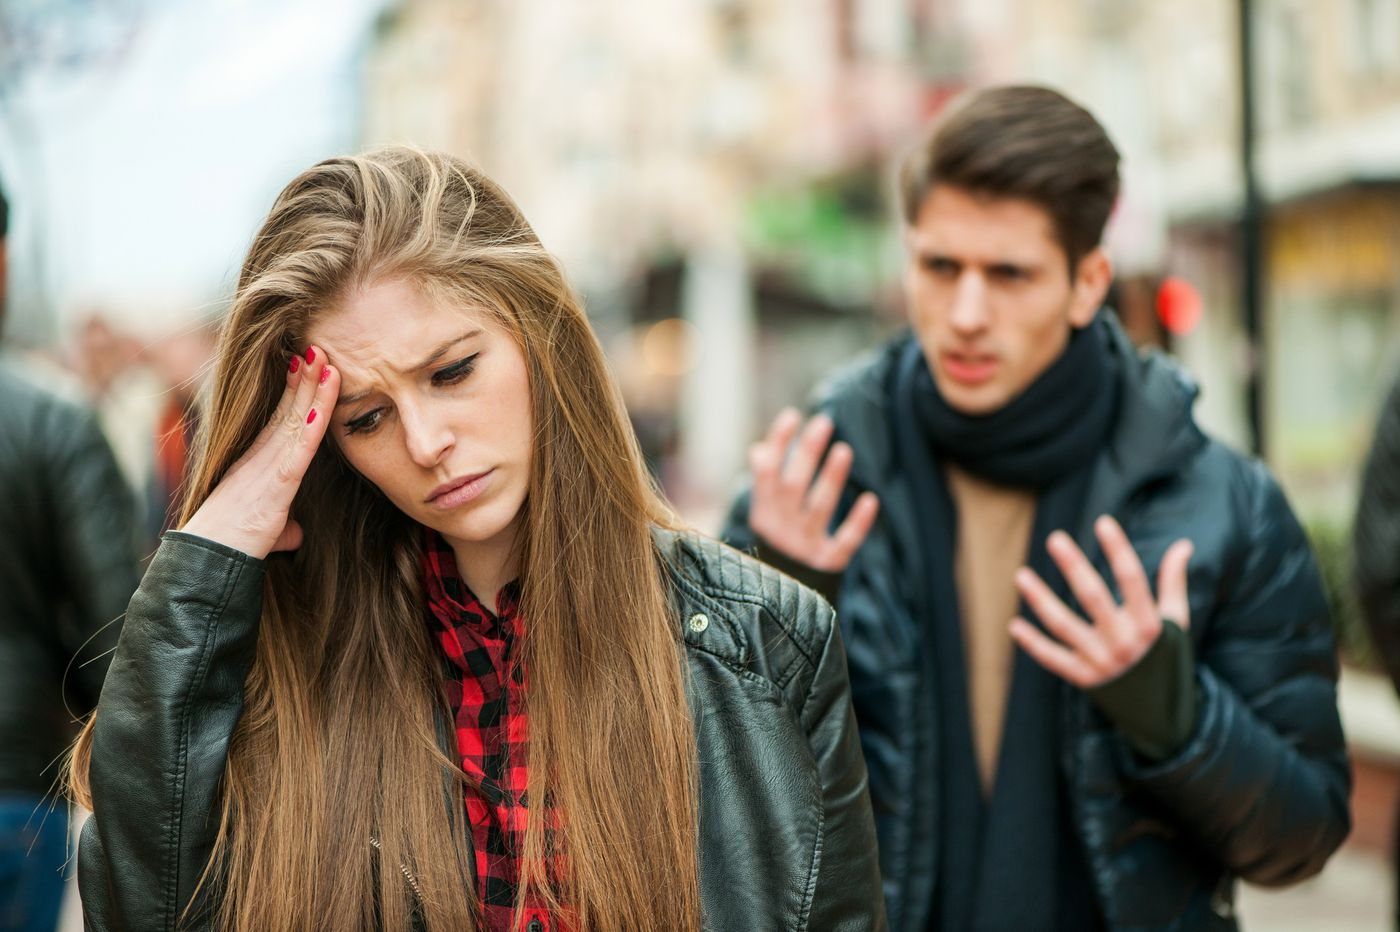 Relationship Abuse Like Breaking Condoms And Hiding Birth